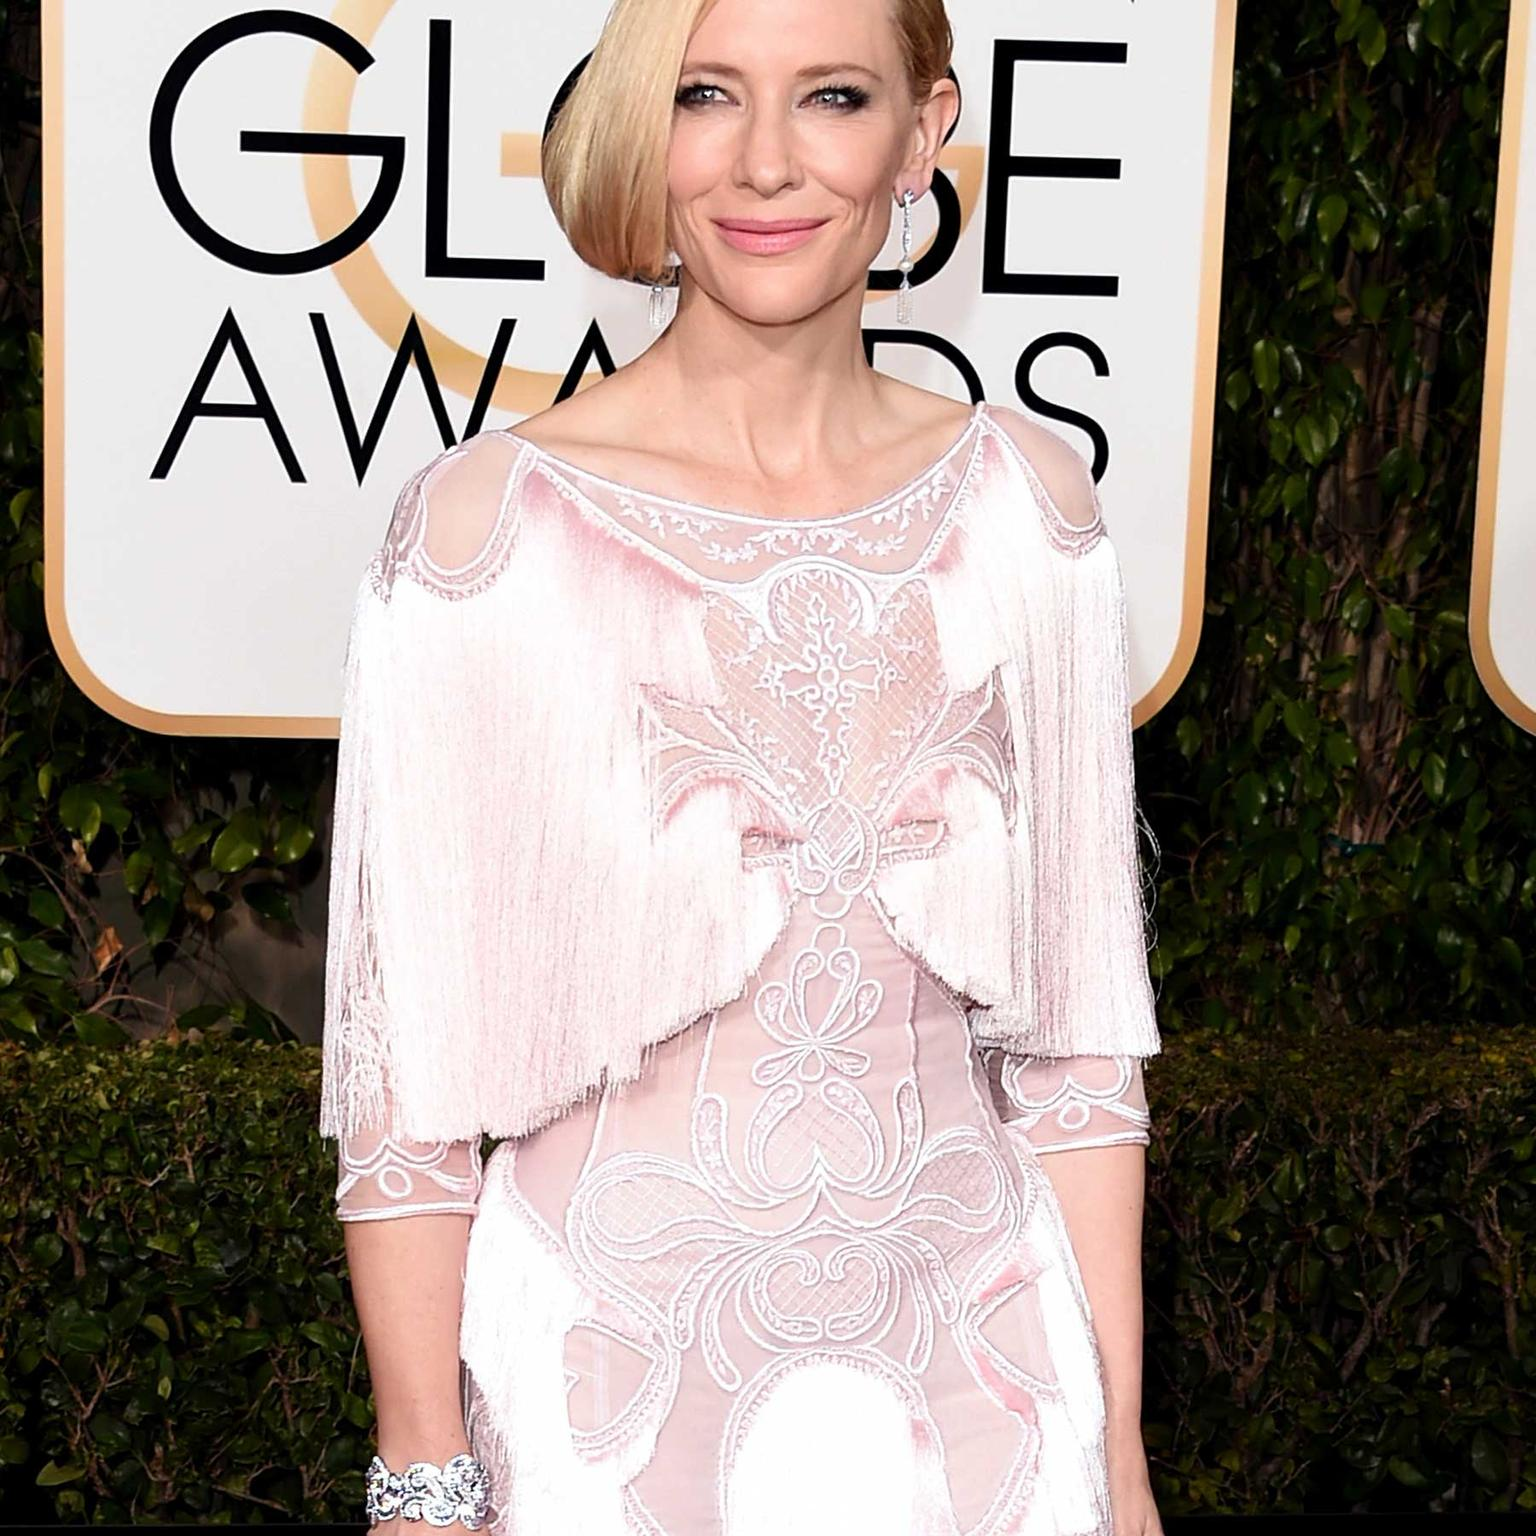 Cate Blanchett wore Tiffany jewelry at the Golden Globes 2016